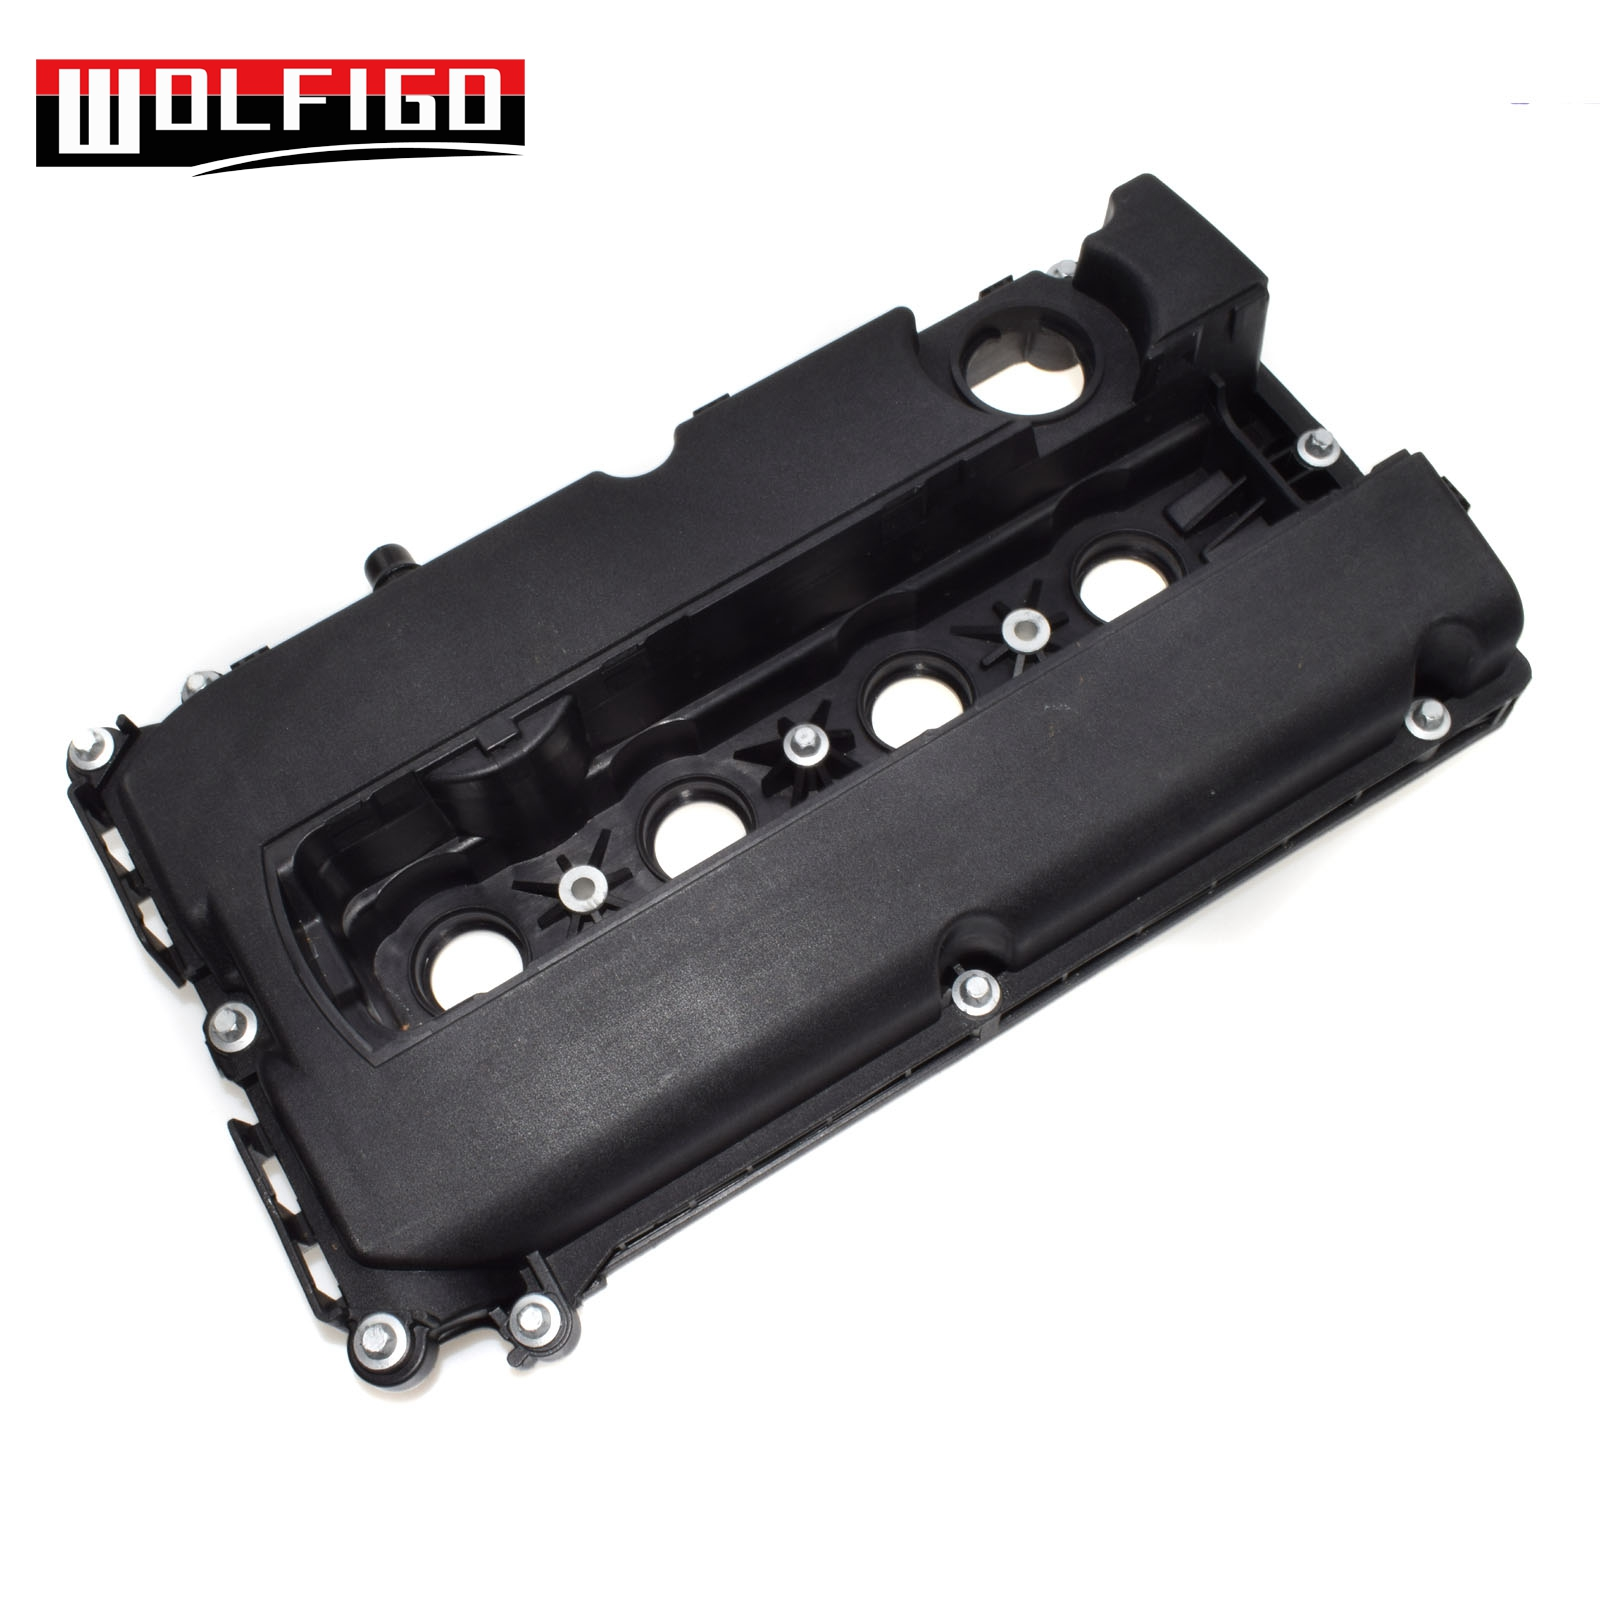 FOR GM Chevrolet Cruze Aveo Saturn Astra 1.8 Engine Valve Cover 55564395 NEW 1x